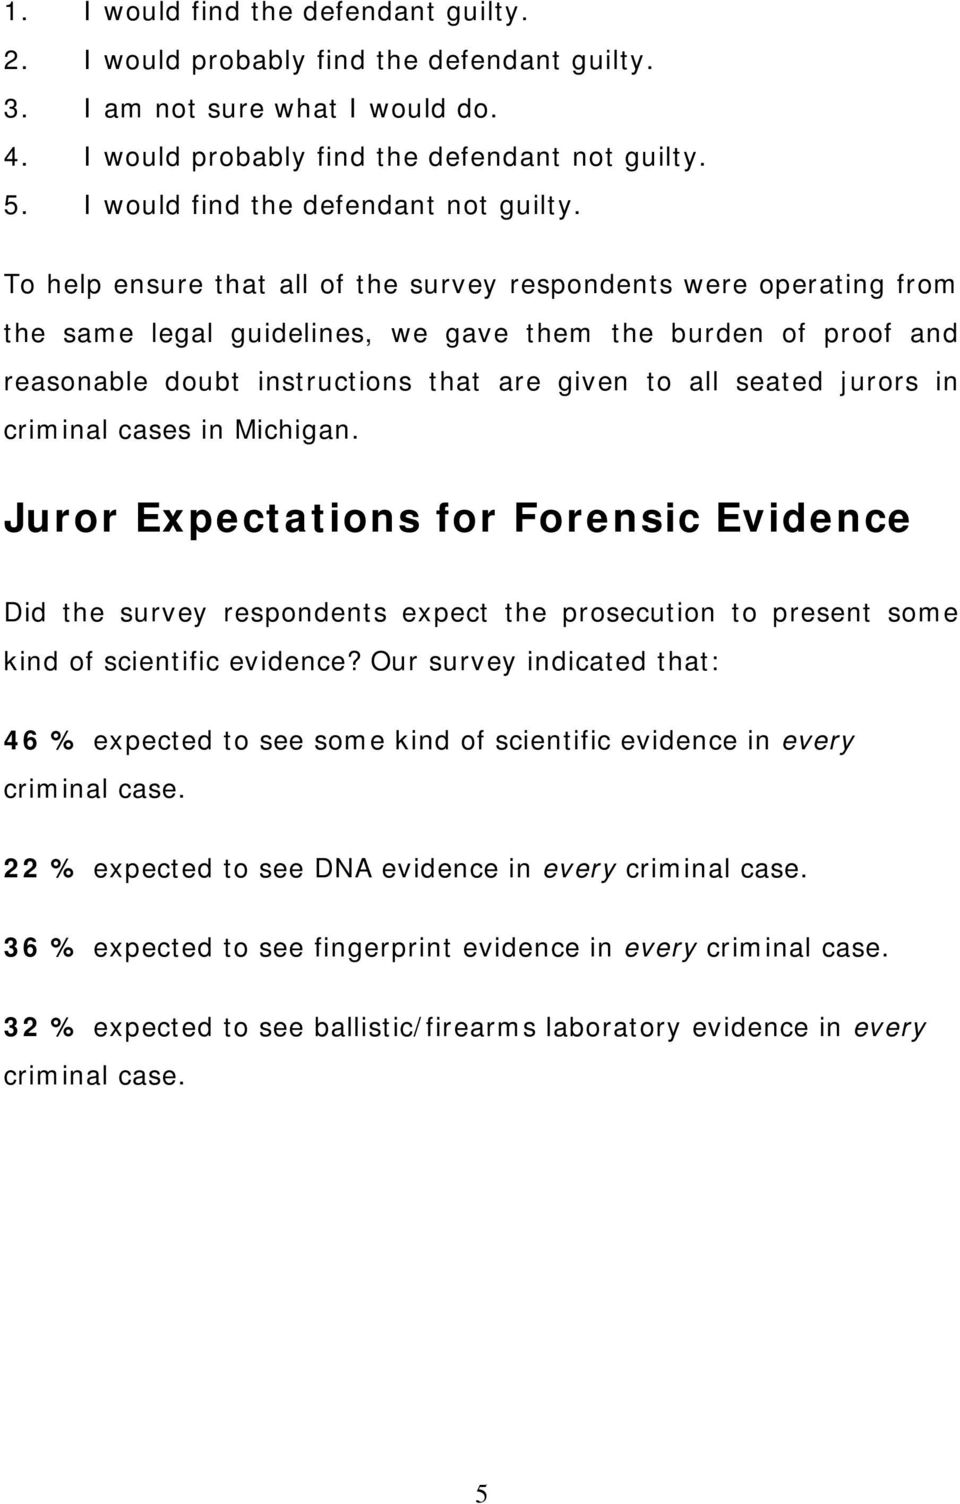 To help ensure that all of the survey respondents were operating from the same legal guidelines, we gave them the burden of proof and reasonable doubt instructions that are given to all seated jurors